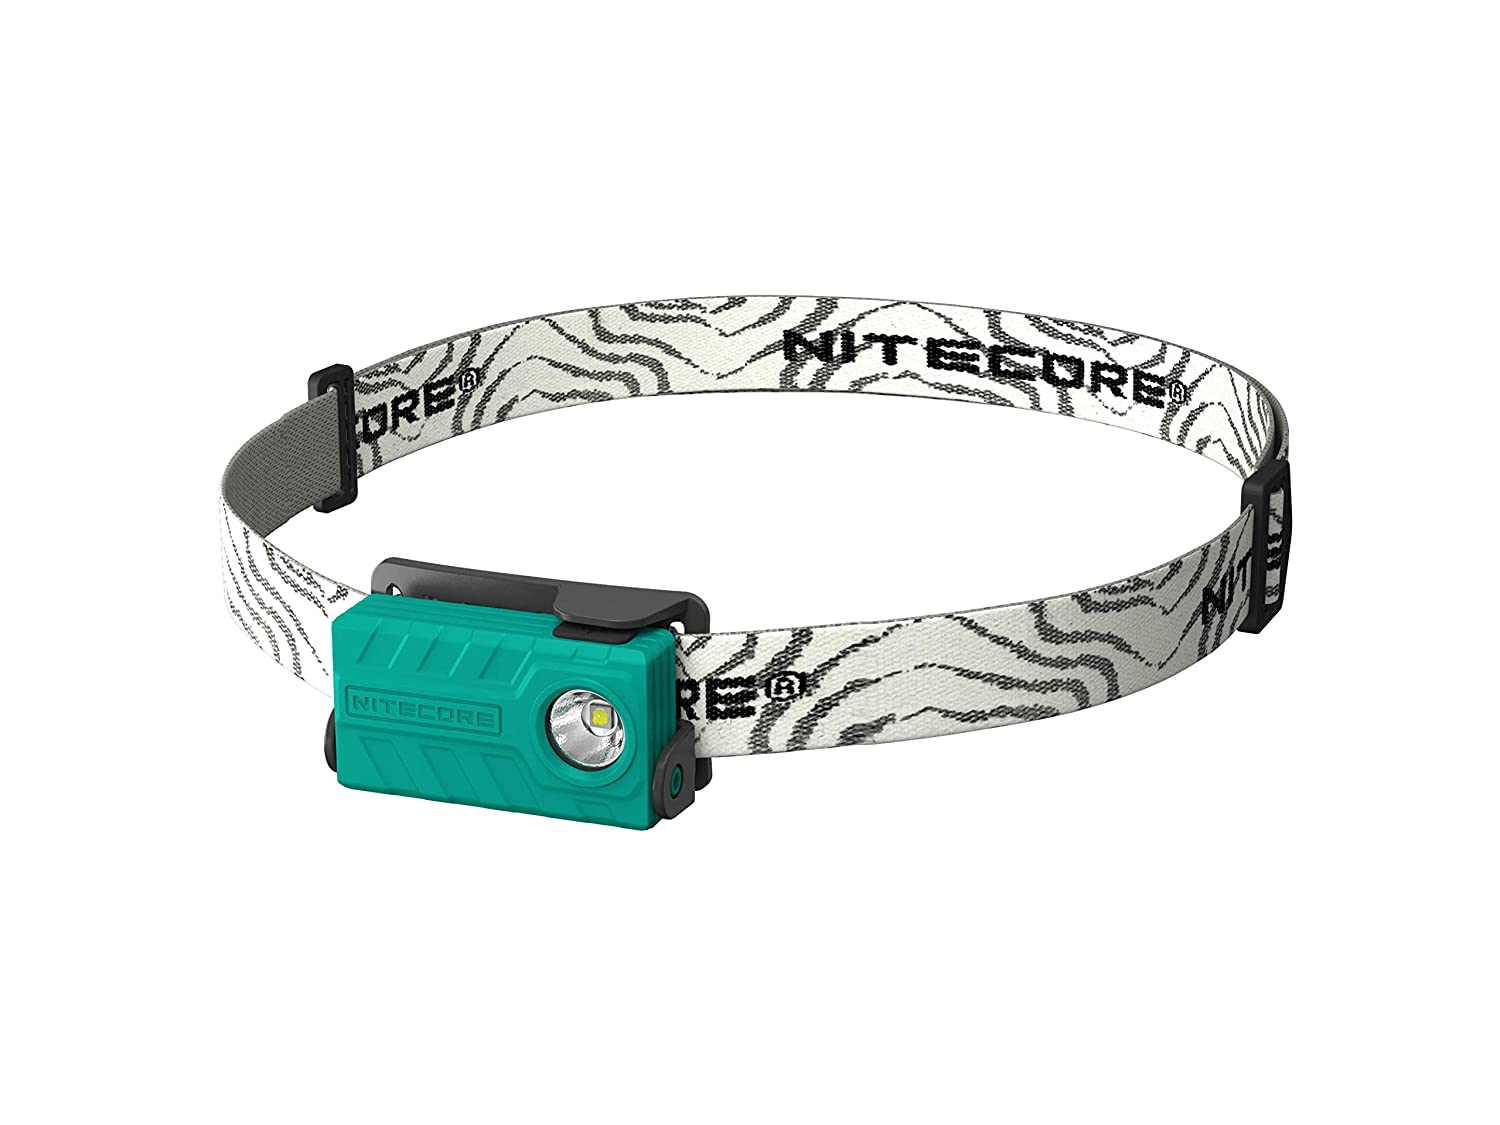 Nu20 USB Rechargeable Headlamp Green Sysmax Industrial Nitecore 9004722